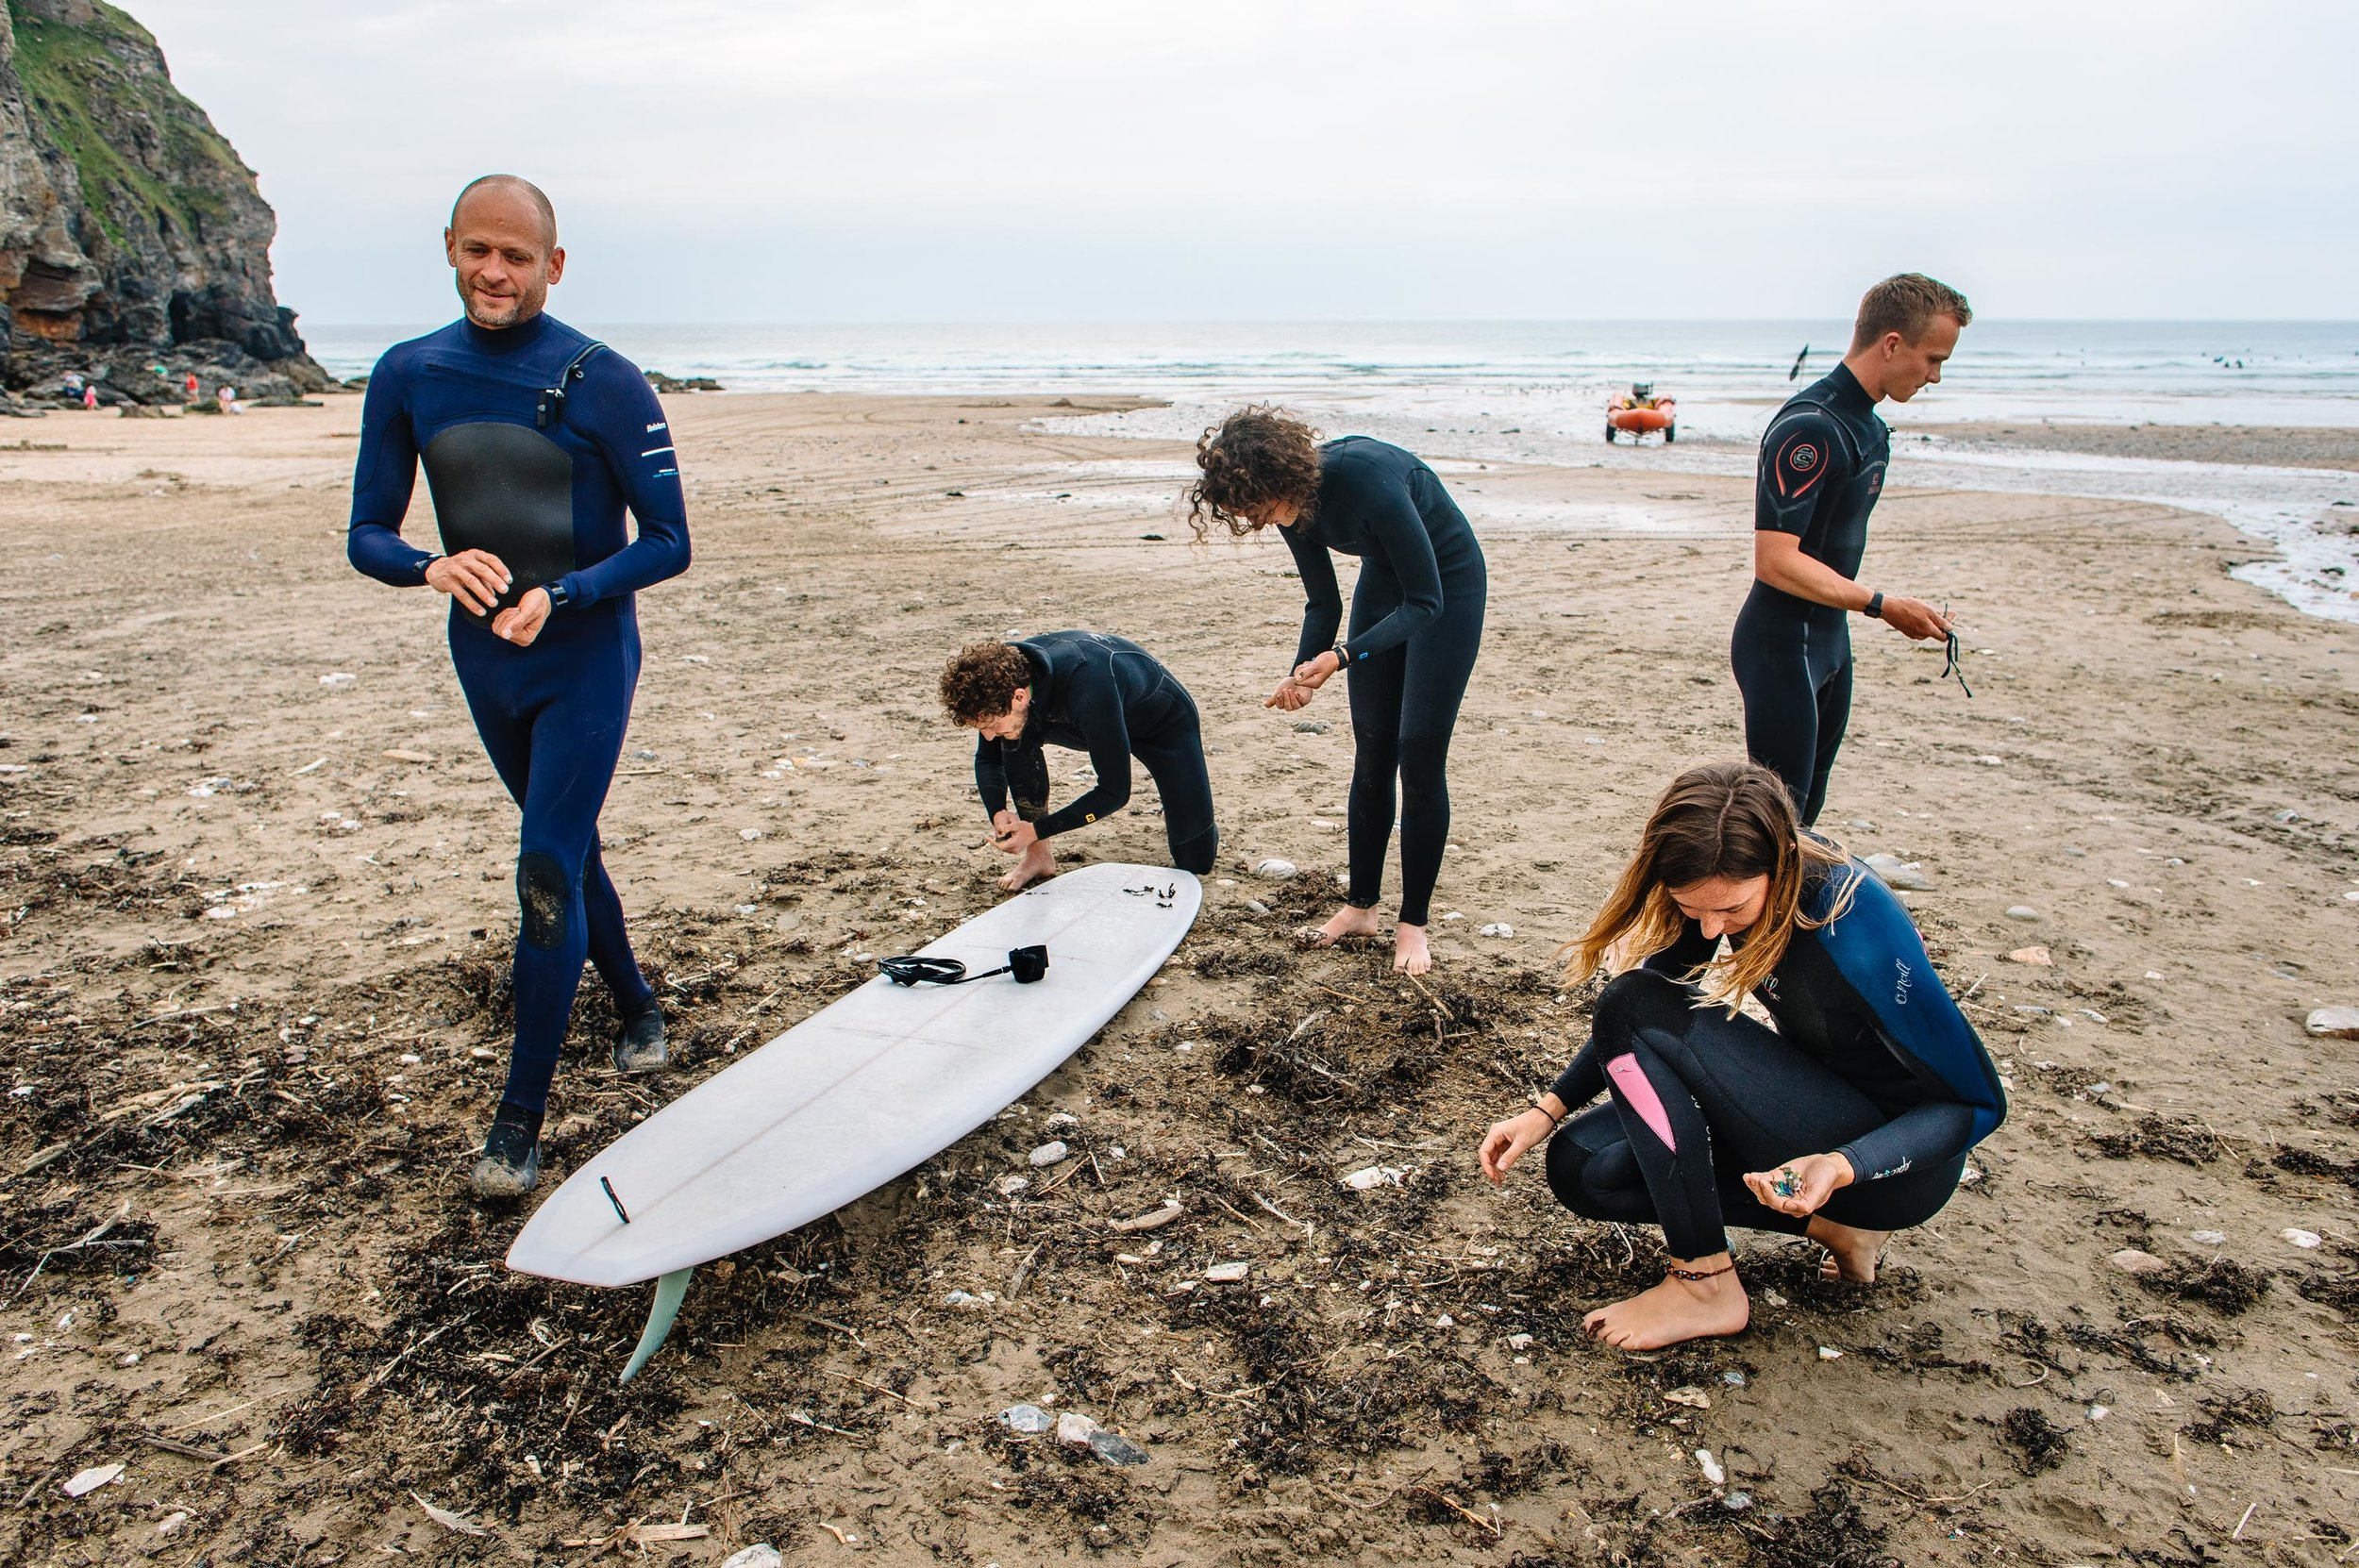 Chief Executive of Surfers Against Sewage, Hugo Tagholm, and employees Dominic Ferris, Ellie Ewart, Sally Fish and Harry Dennis (left to right) collect pieces of plastic pollution and other litter along Porthtowan Beach. St Agnes, Cornwall, UK. 29 May 2018.